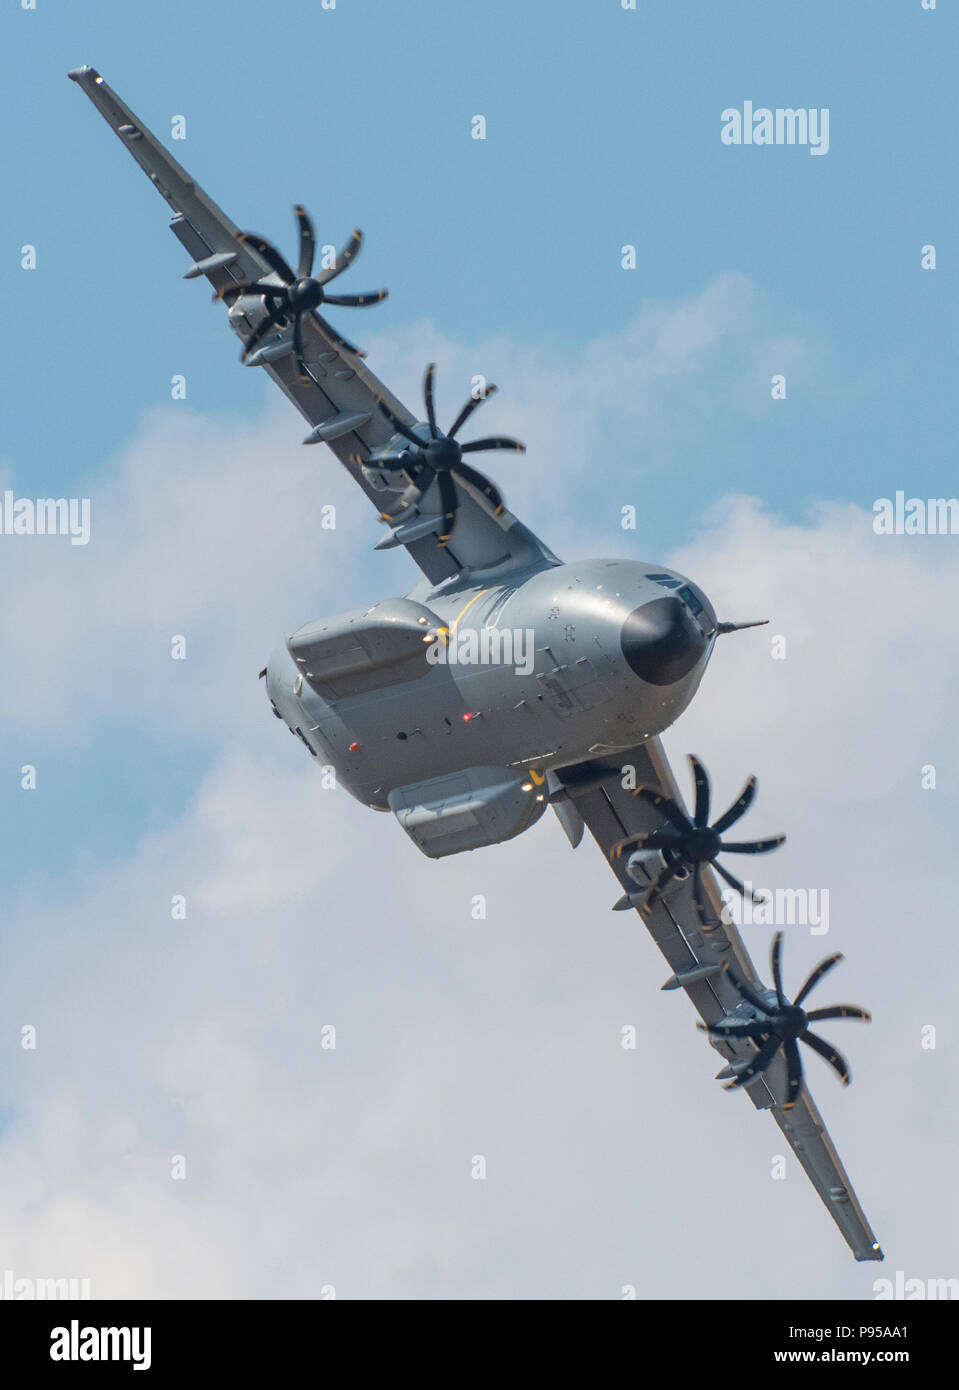 Gloucestershire, UK.14th July, 2018. Boeing A400 at The Royal International Air Tattoo, RAF Fairford, Gloucestershire, United Kingdom. RIAT 2018 celebrating the 100th Anniversay Of the Royal Air Force with a massive air display at RAF Fairford in Gloucestershire. Air forces and fliers from around the world get together to provide stunning dislpays and areobatics for a huge record crowd of spectators. . Credit: Steve Hawkins Photography/Alamy Live News - Stock Image